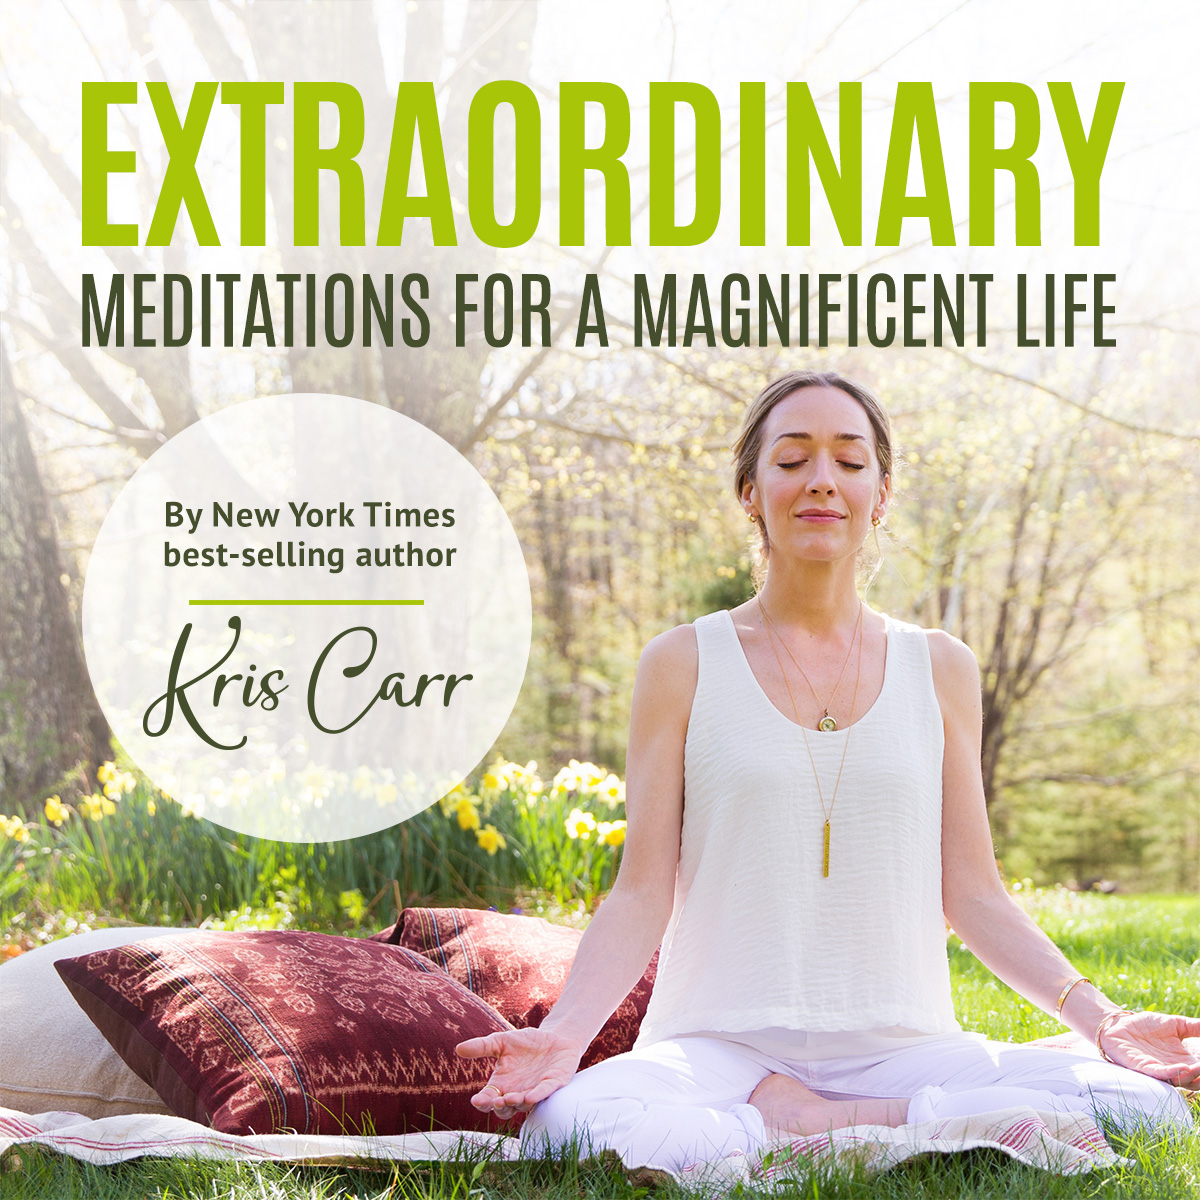 Extraordinary Meditations for a Magnificent Life